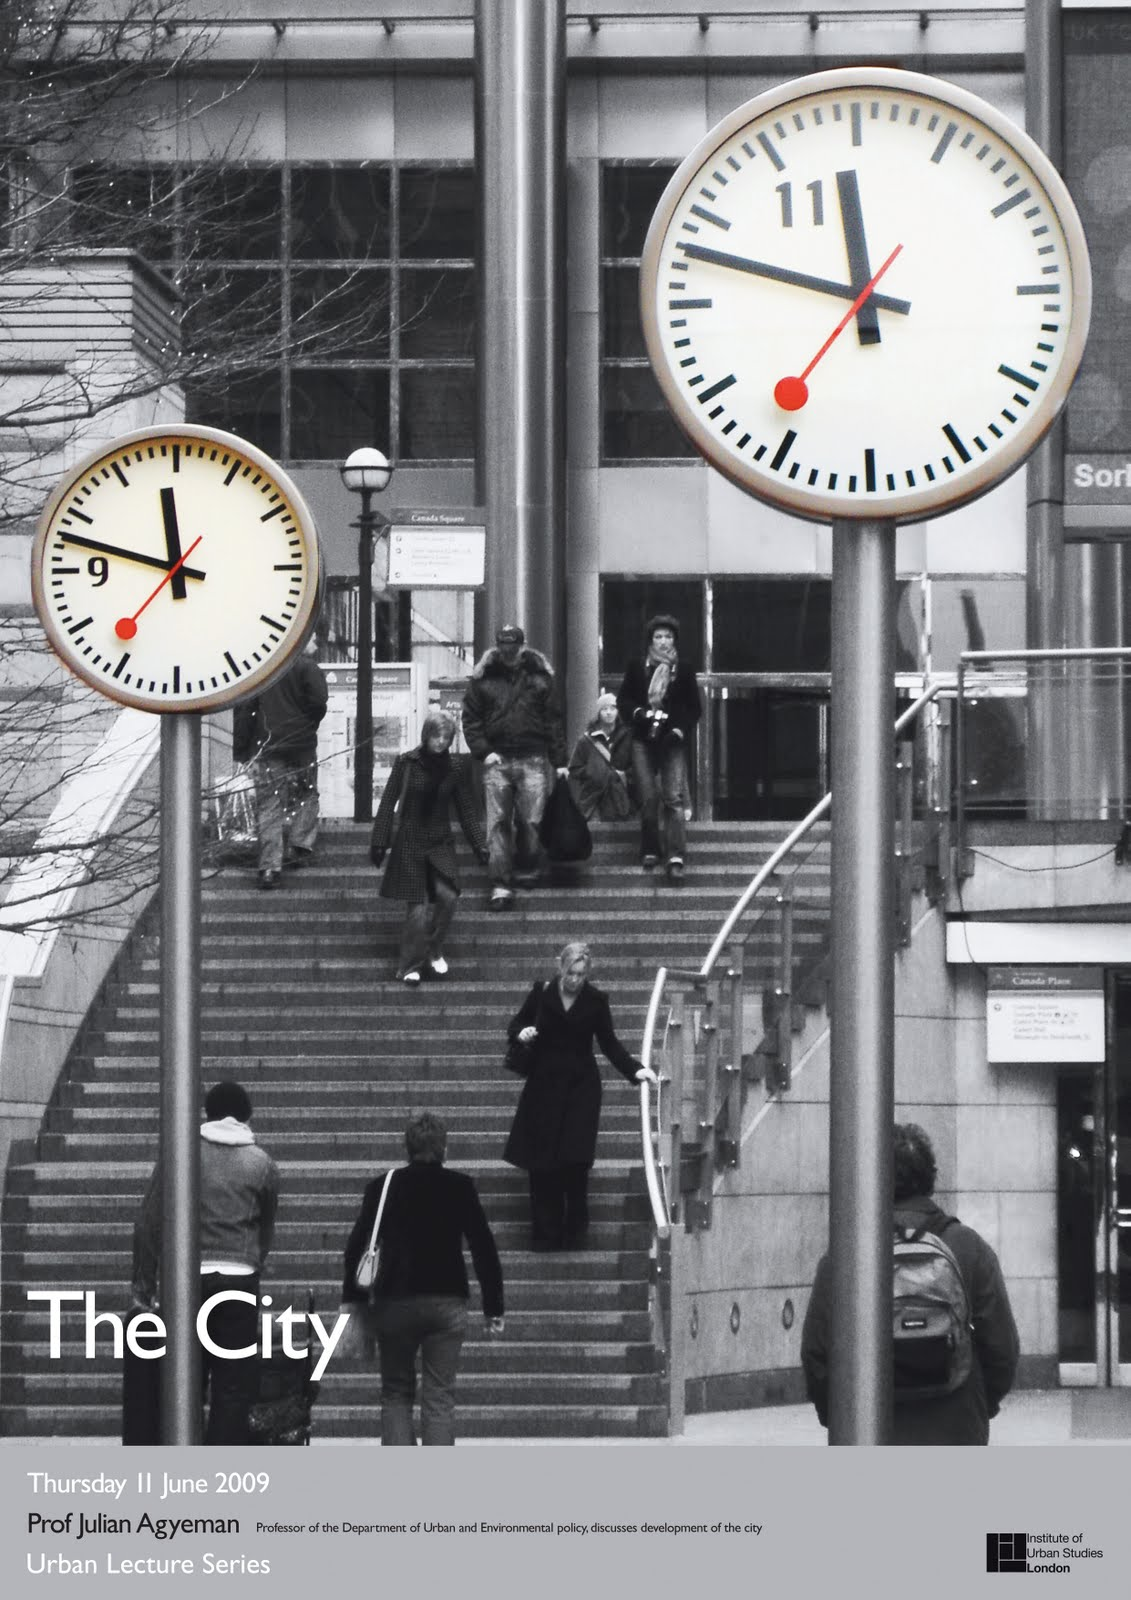 University Project: Urban Lectures – Posters of 4 environments